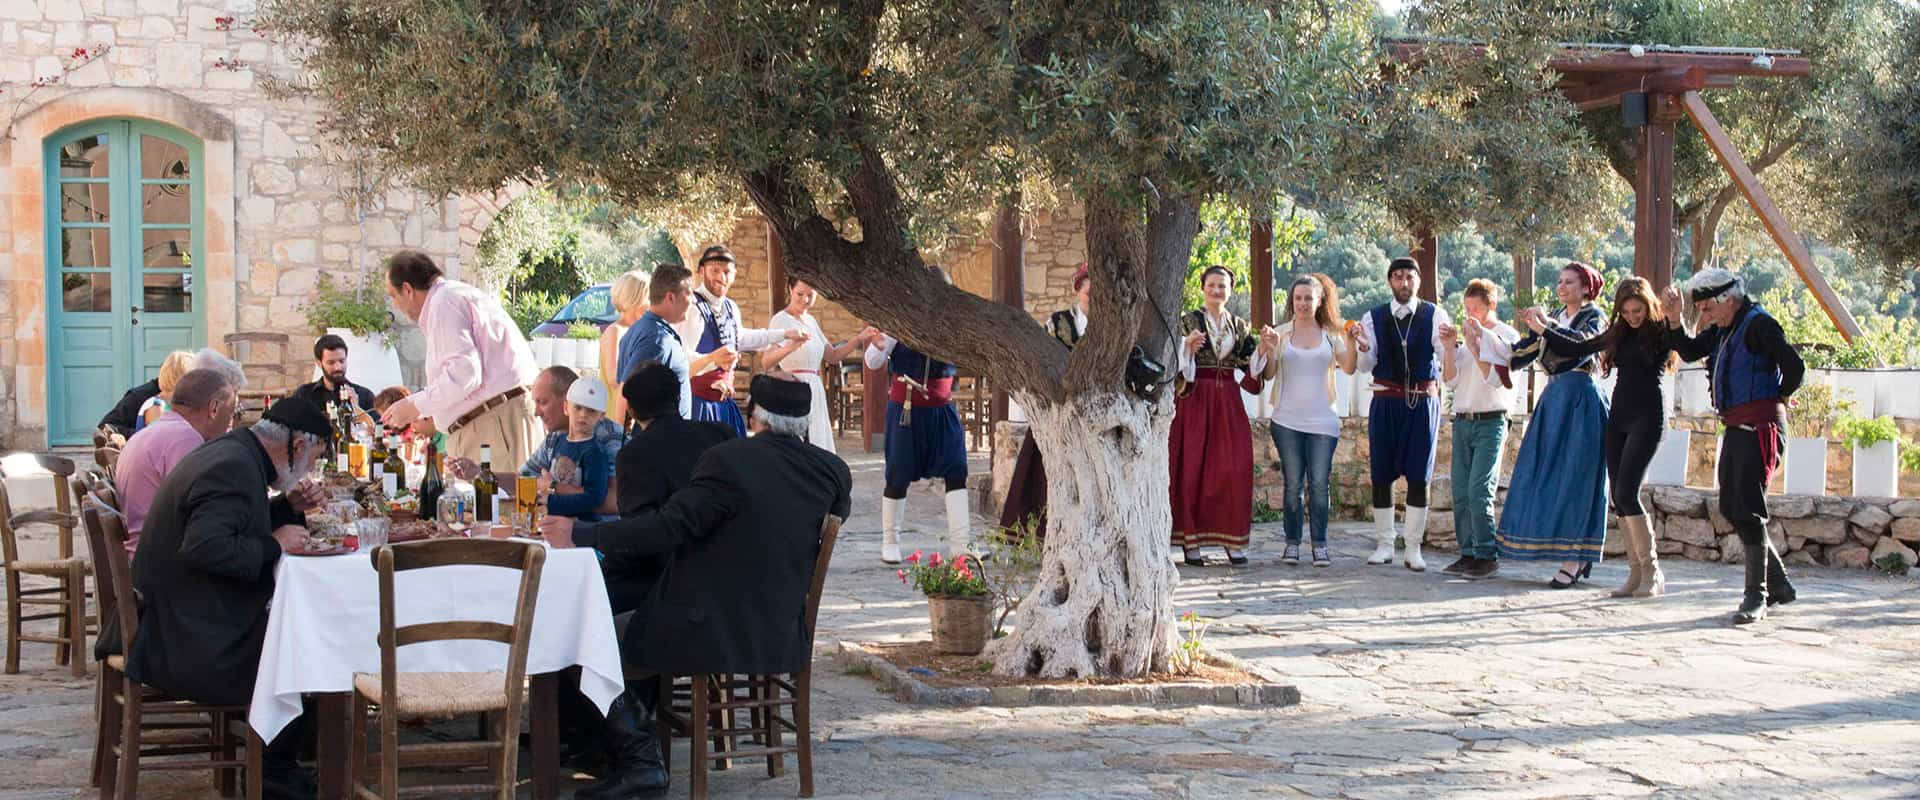 Watch Cretan traditional dances and why not try it for yourself.